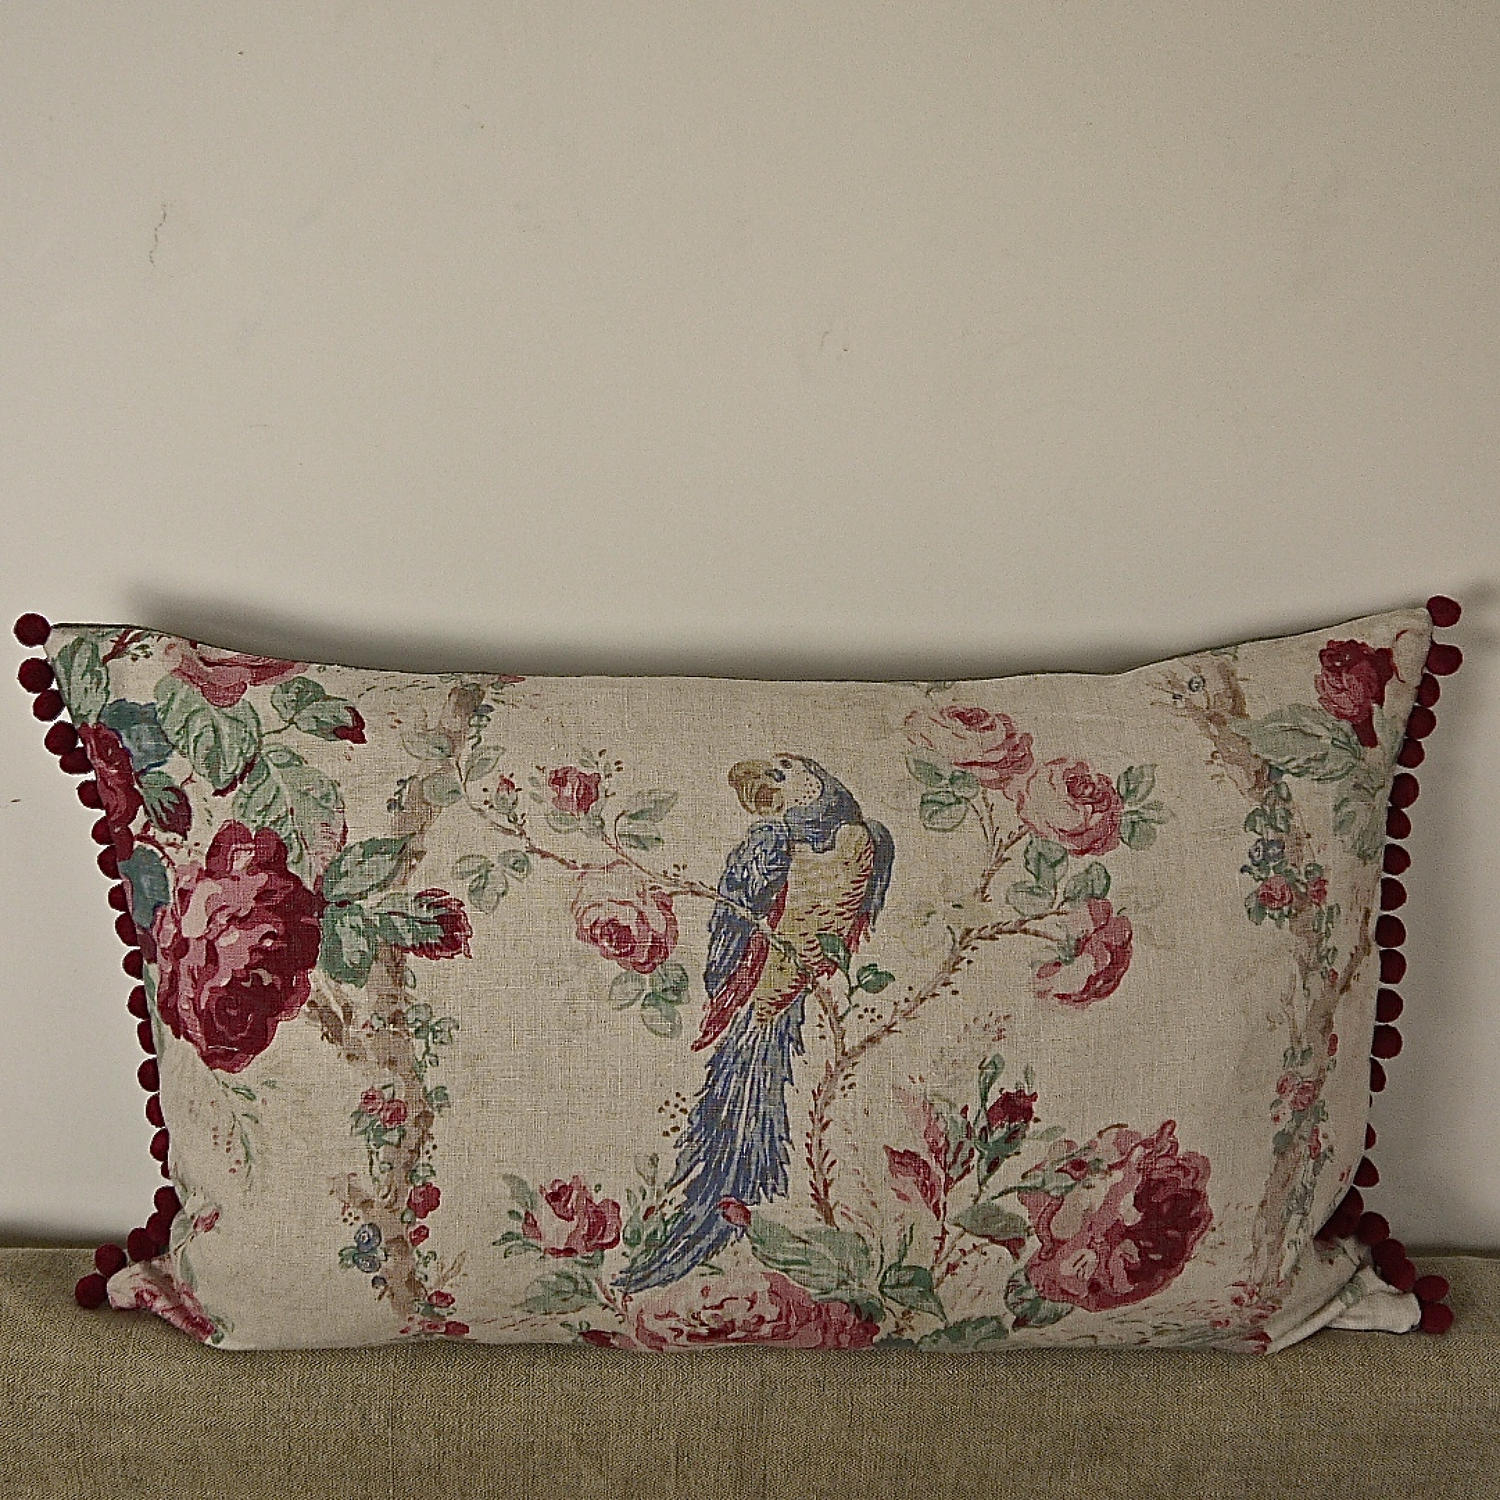 Early 20th century French parrot roses linen cushion